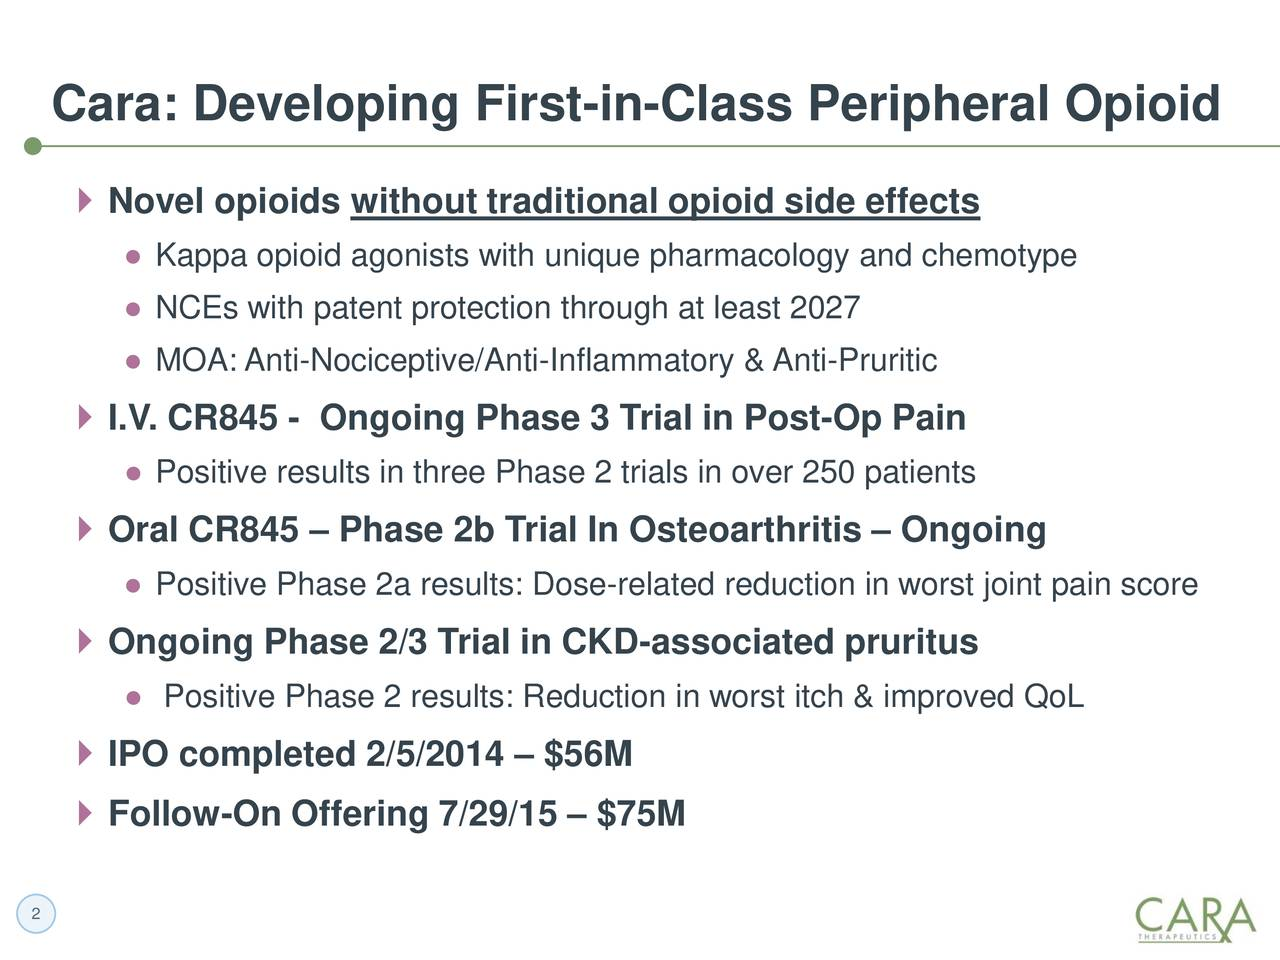 Novel opioids without traditional opioid side effects Kappa opioid agonists with unique pharmacology and chemotype NCEs with patent protection through at least 2027 MOA: Anti-Nociceptive/Anti-Inflammatory & Anti-Pruritic I.V. CR845 - Ongoing Phase 3 Trial in Post-Op Pain Positive results in three Phase 2 trials in over 250 patients Oral CR845  Phase 2b Trial In Osteoarthritis  Ongoing Positive Phase 2a results: Dose-related reduction in worst joint pain score Ongoing Phase 2/3 Trial in CKD-associated pruritus Positive Phase 2 results: Reduction in worst itch & improved QoL IPO completed 2/5/2014  $56M Follow-On Offering 7/29/15  $75M 2